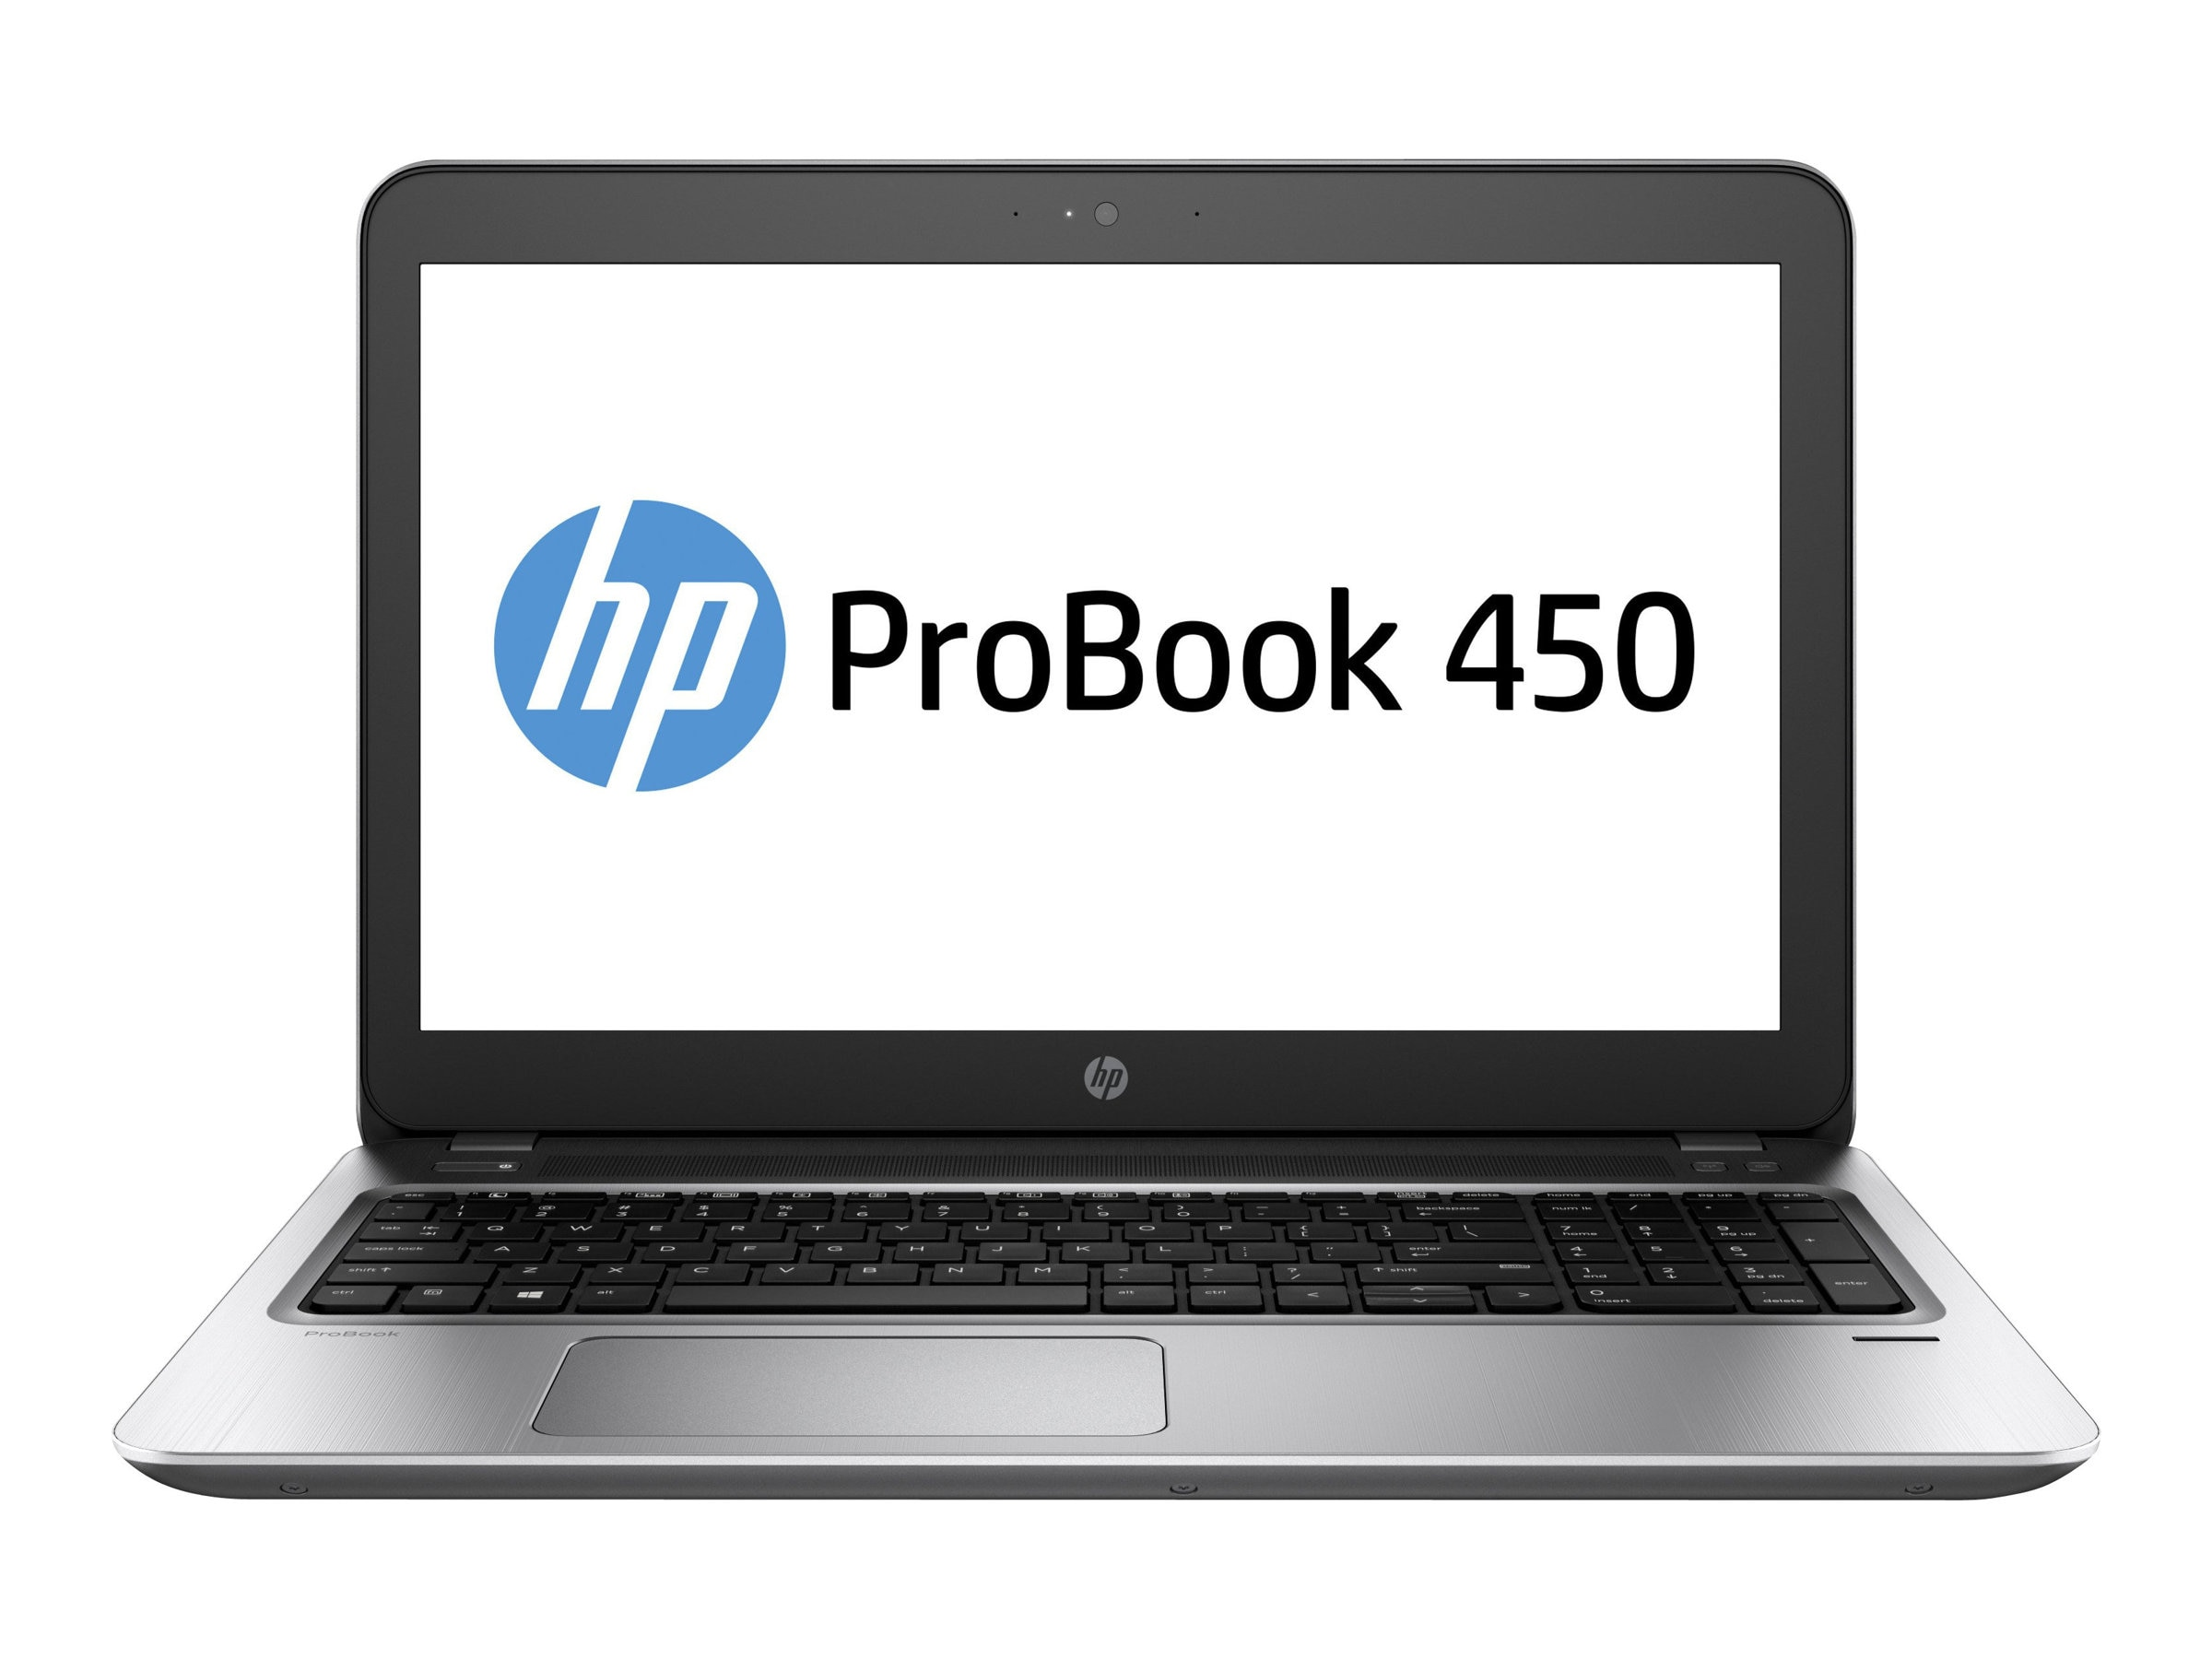 HP ProBook 450 G4 2.7GHz Core i7 15.6in display, Y9F97UT#ABA